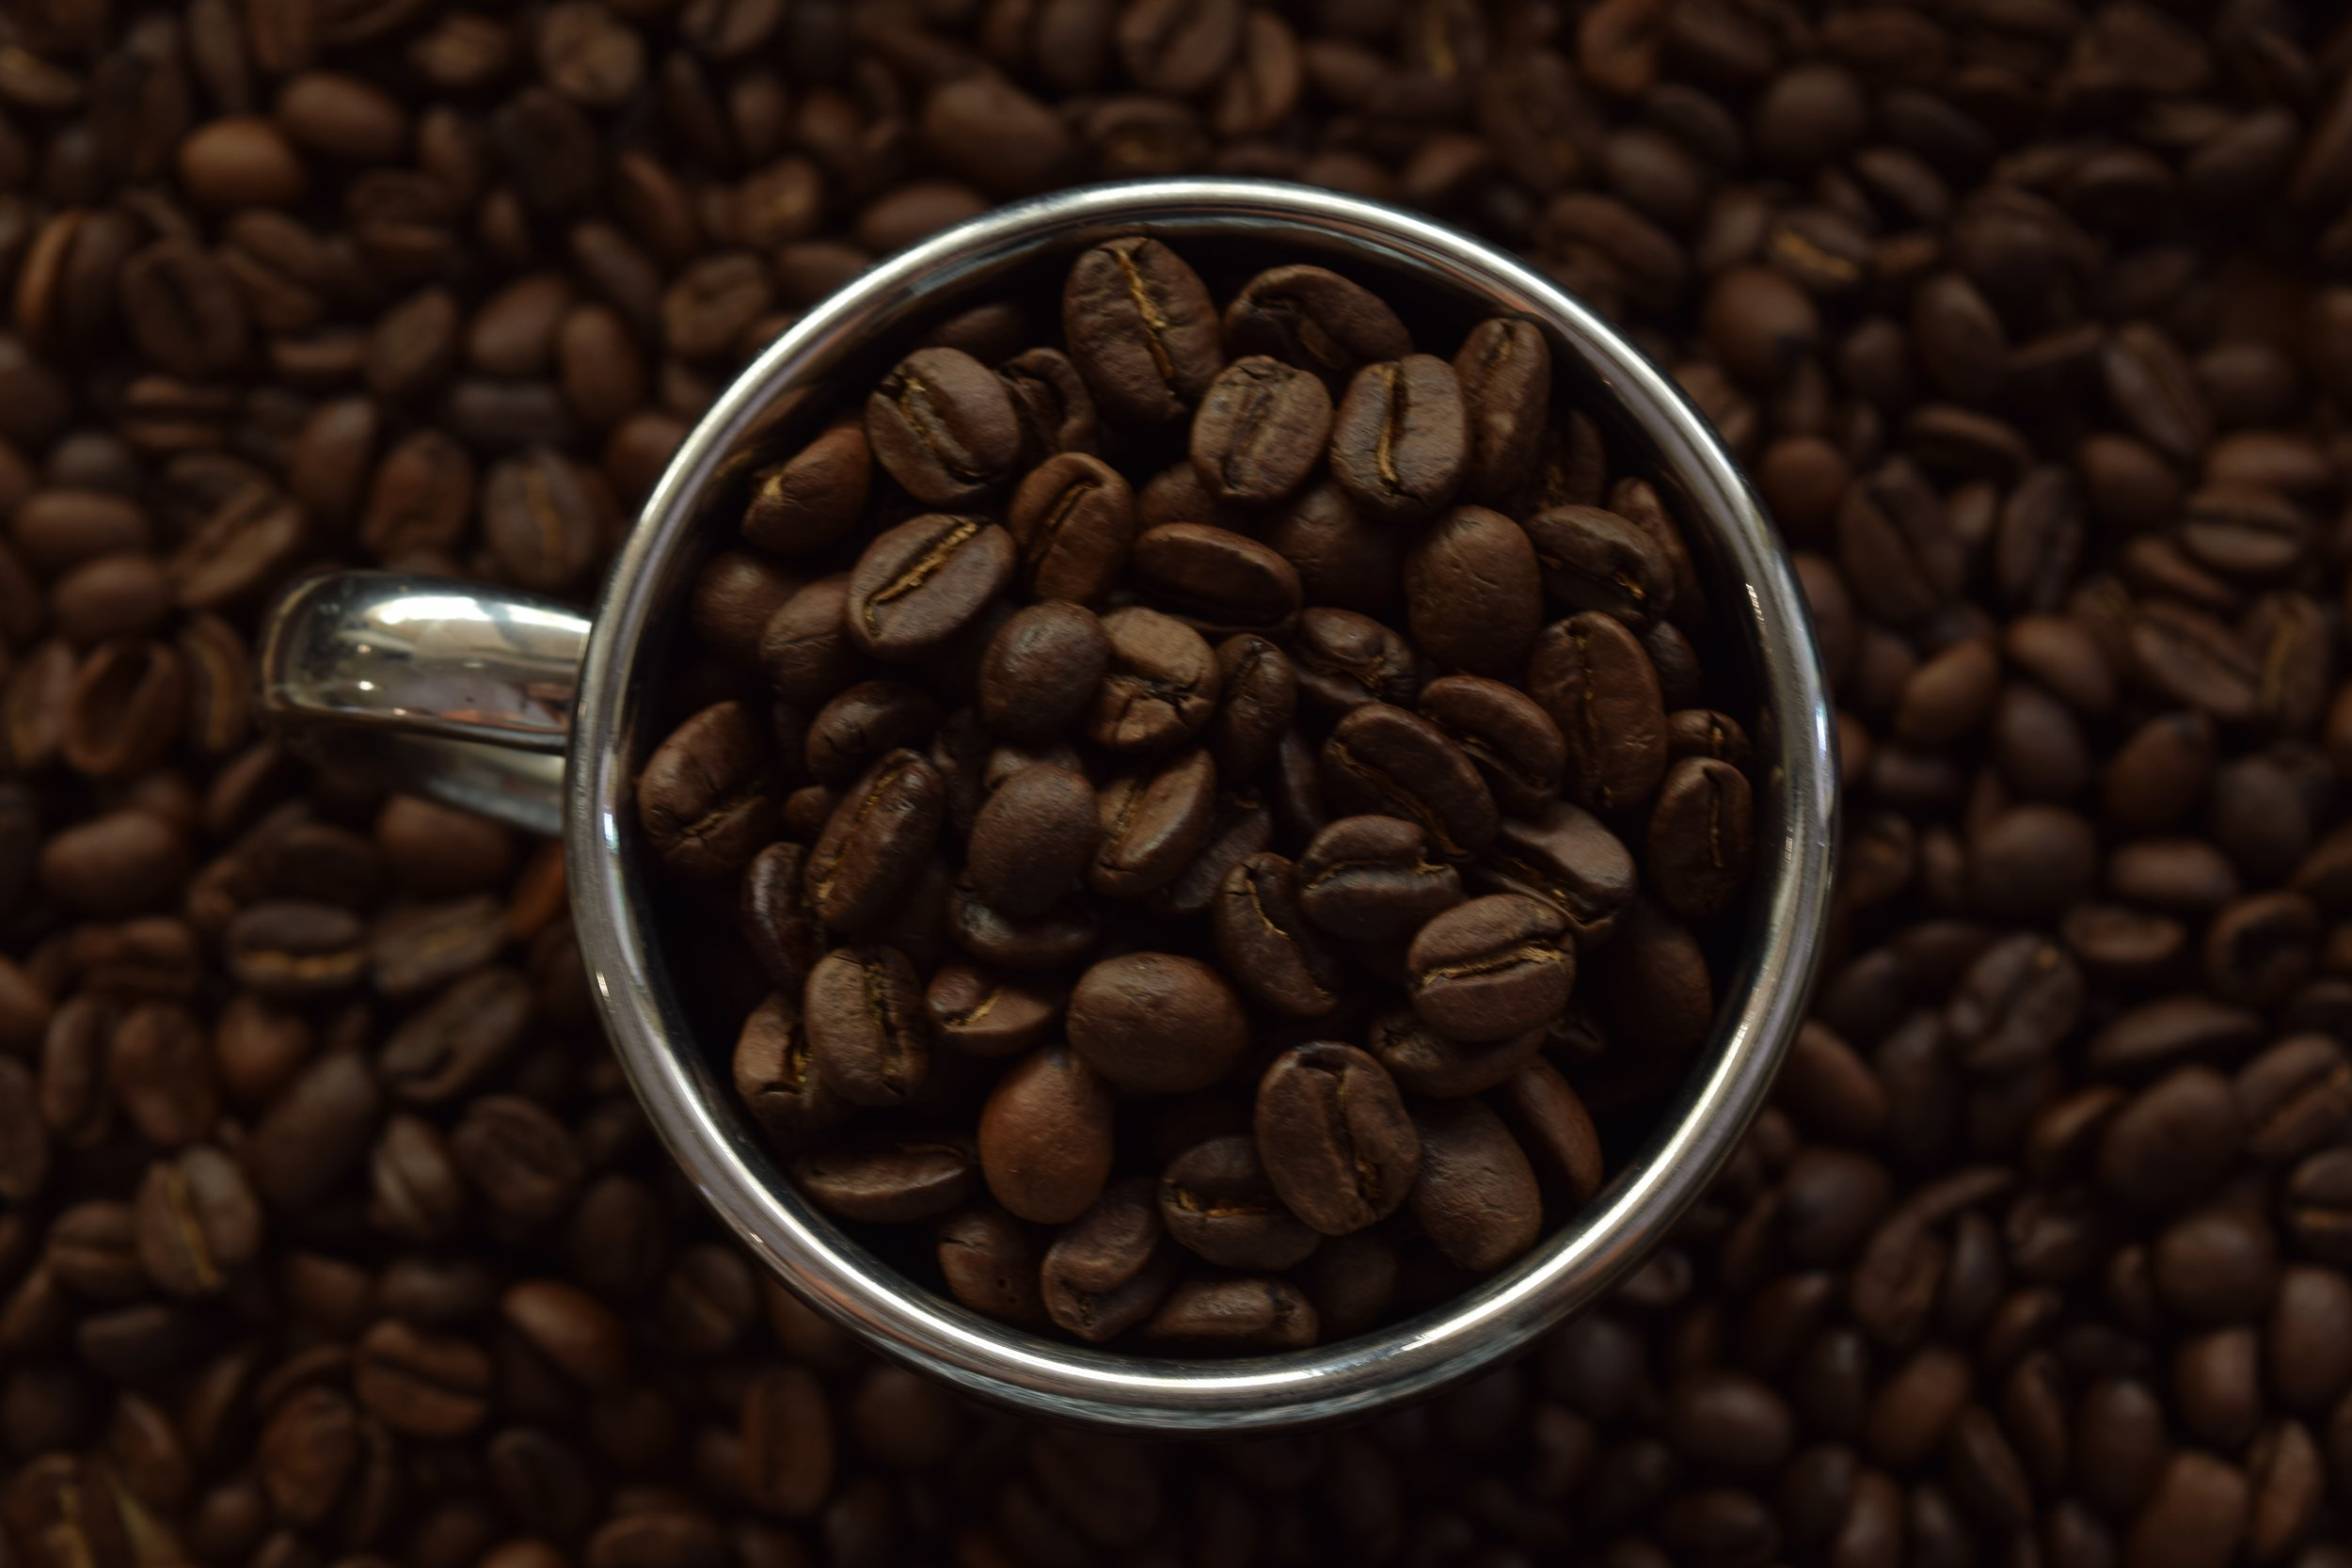 Roasted coffee beans in stainless cup